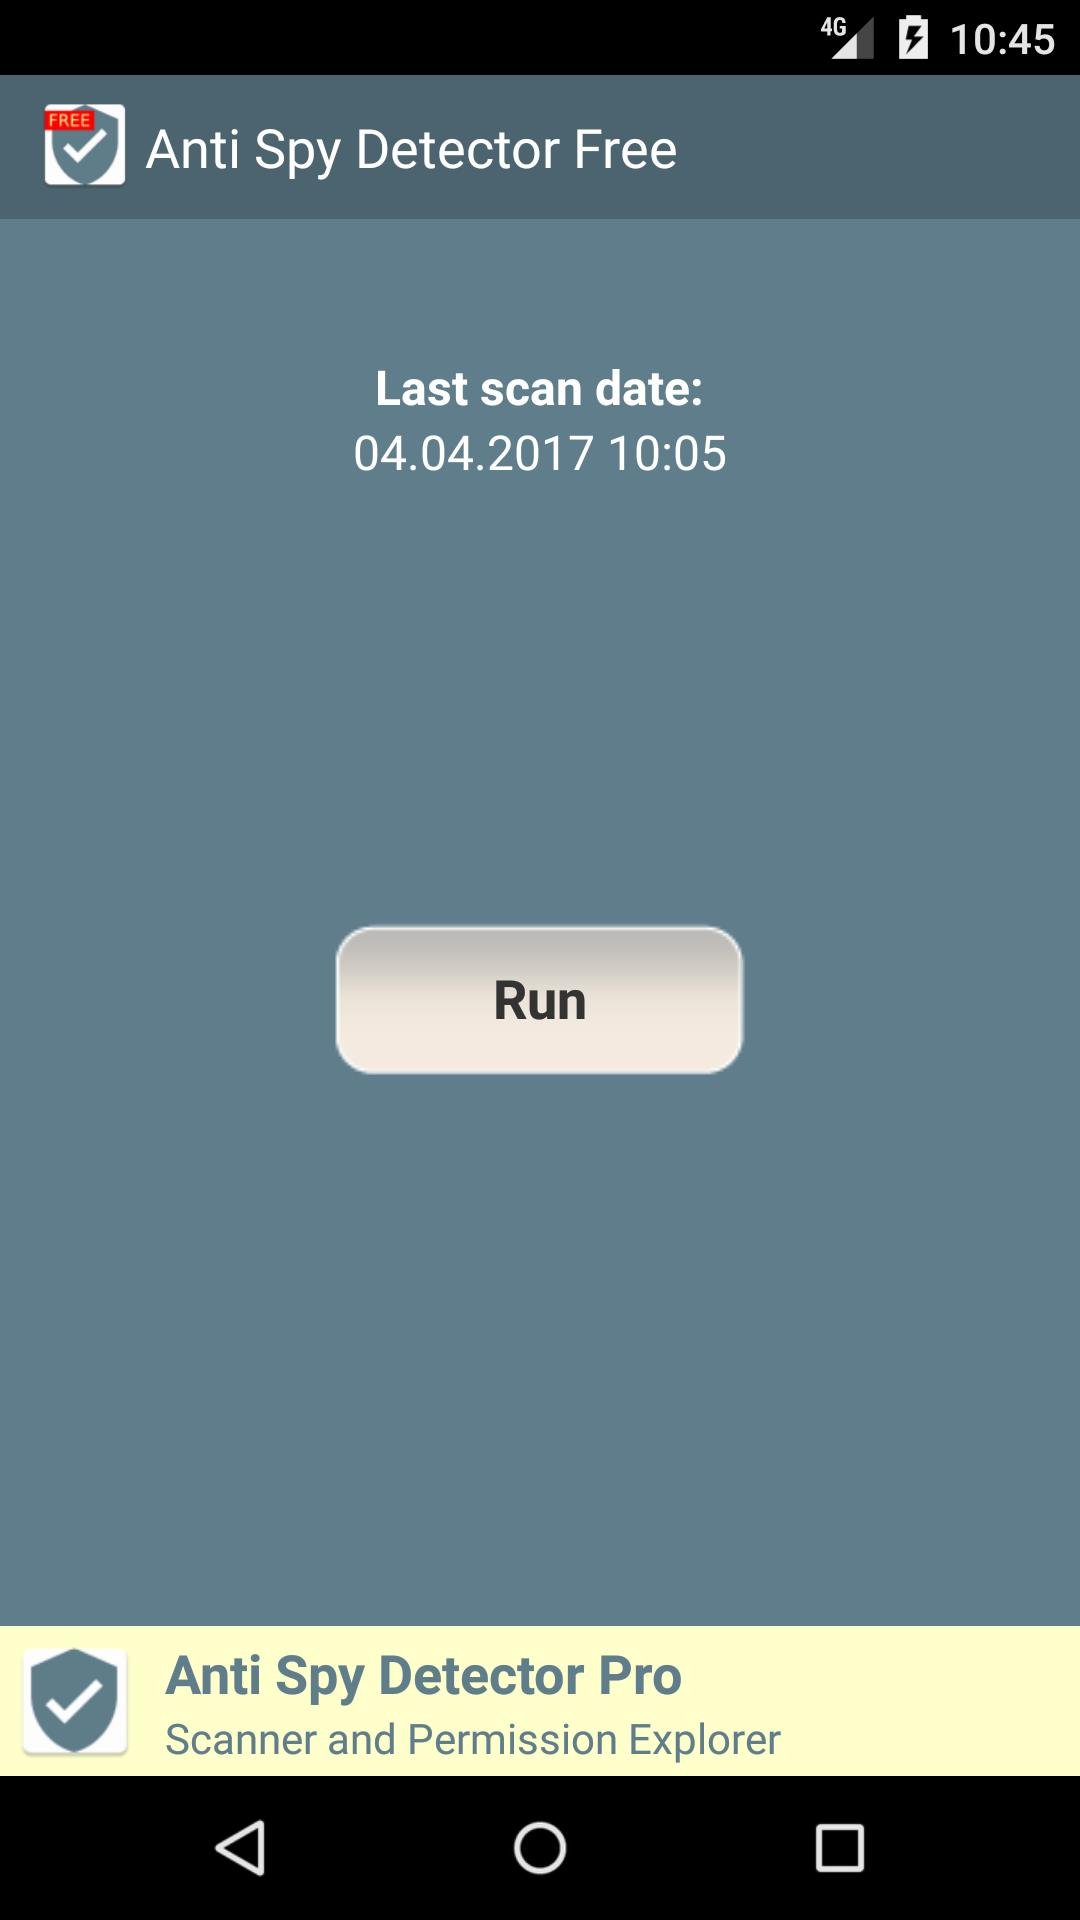 Anti Spy Detector Free for Android - APK Download